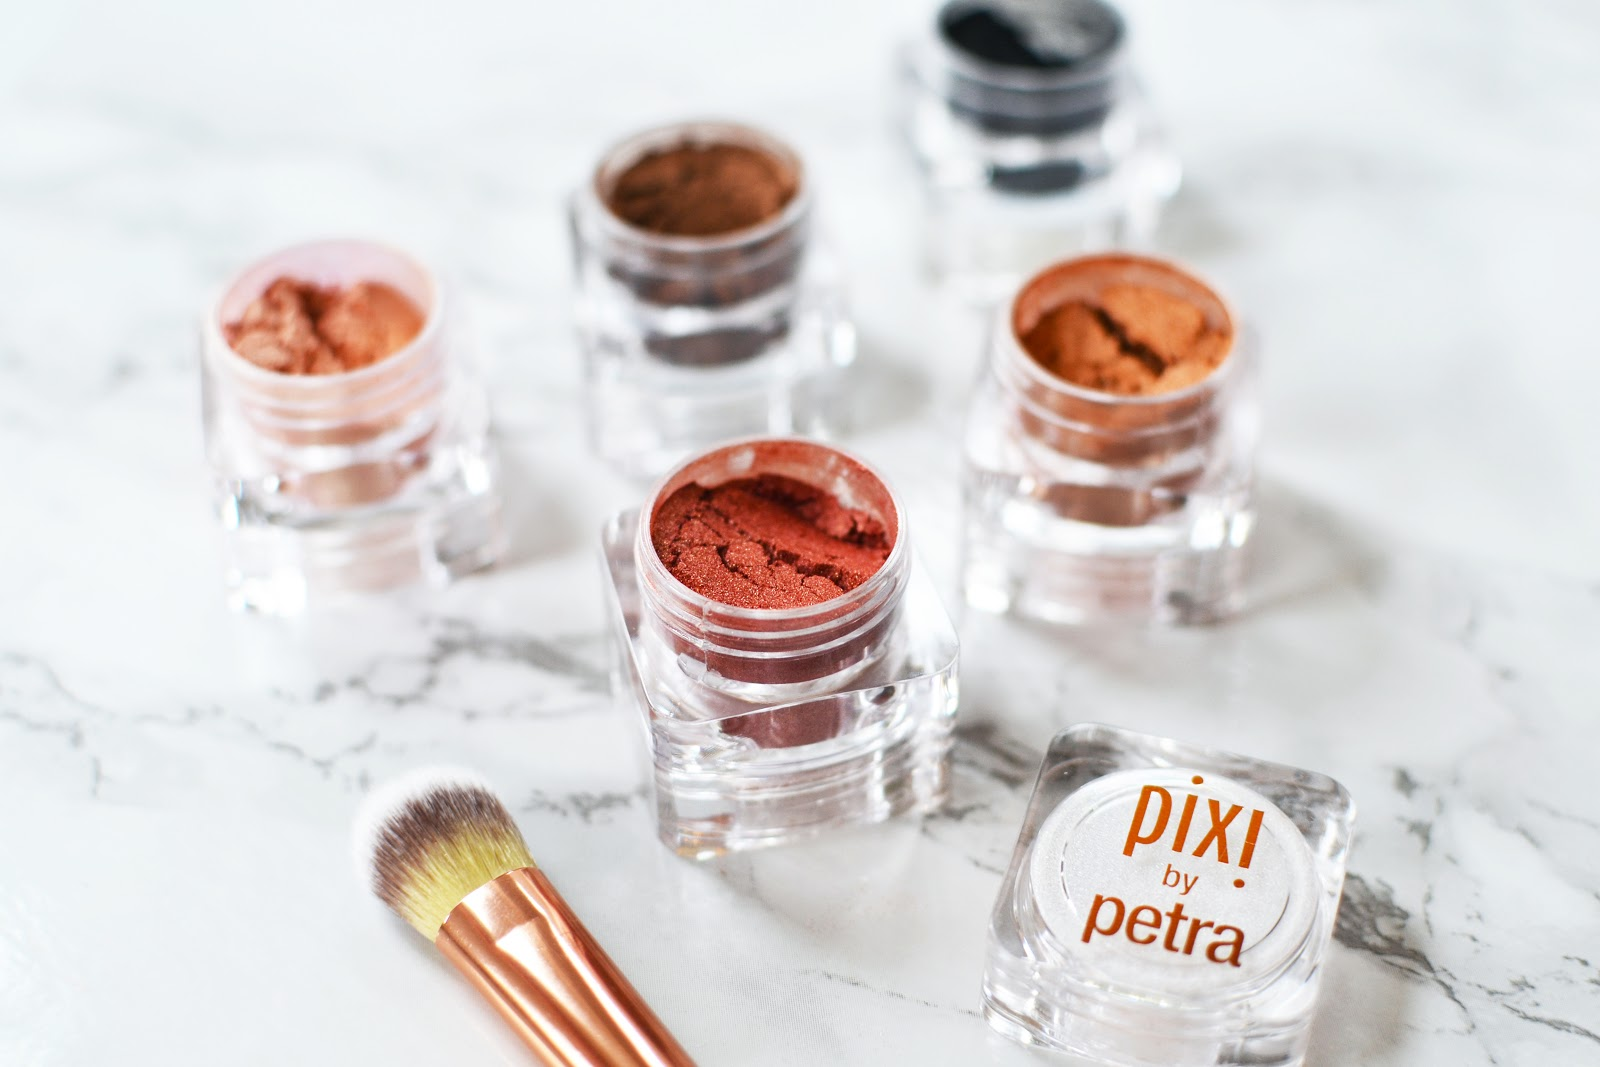 pixi by petra Fairy Dust Set